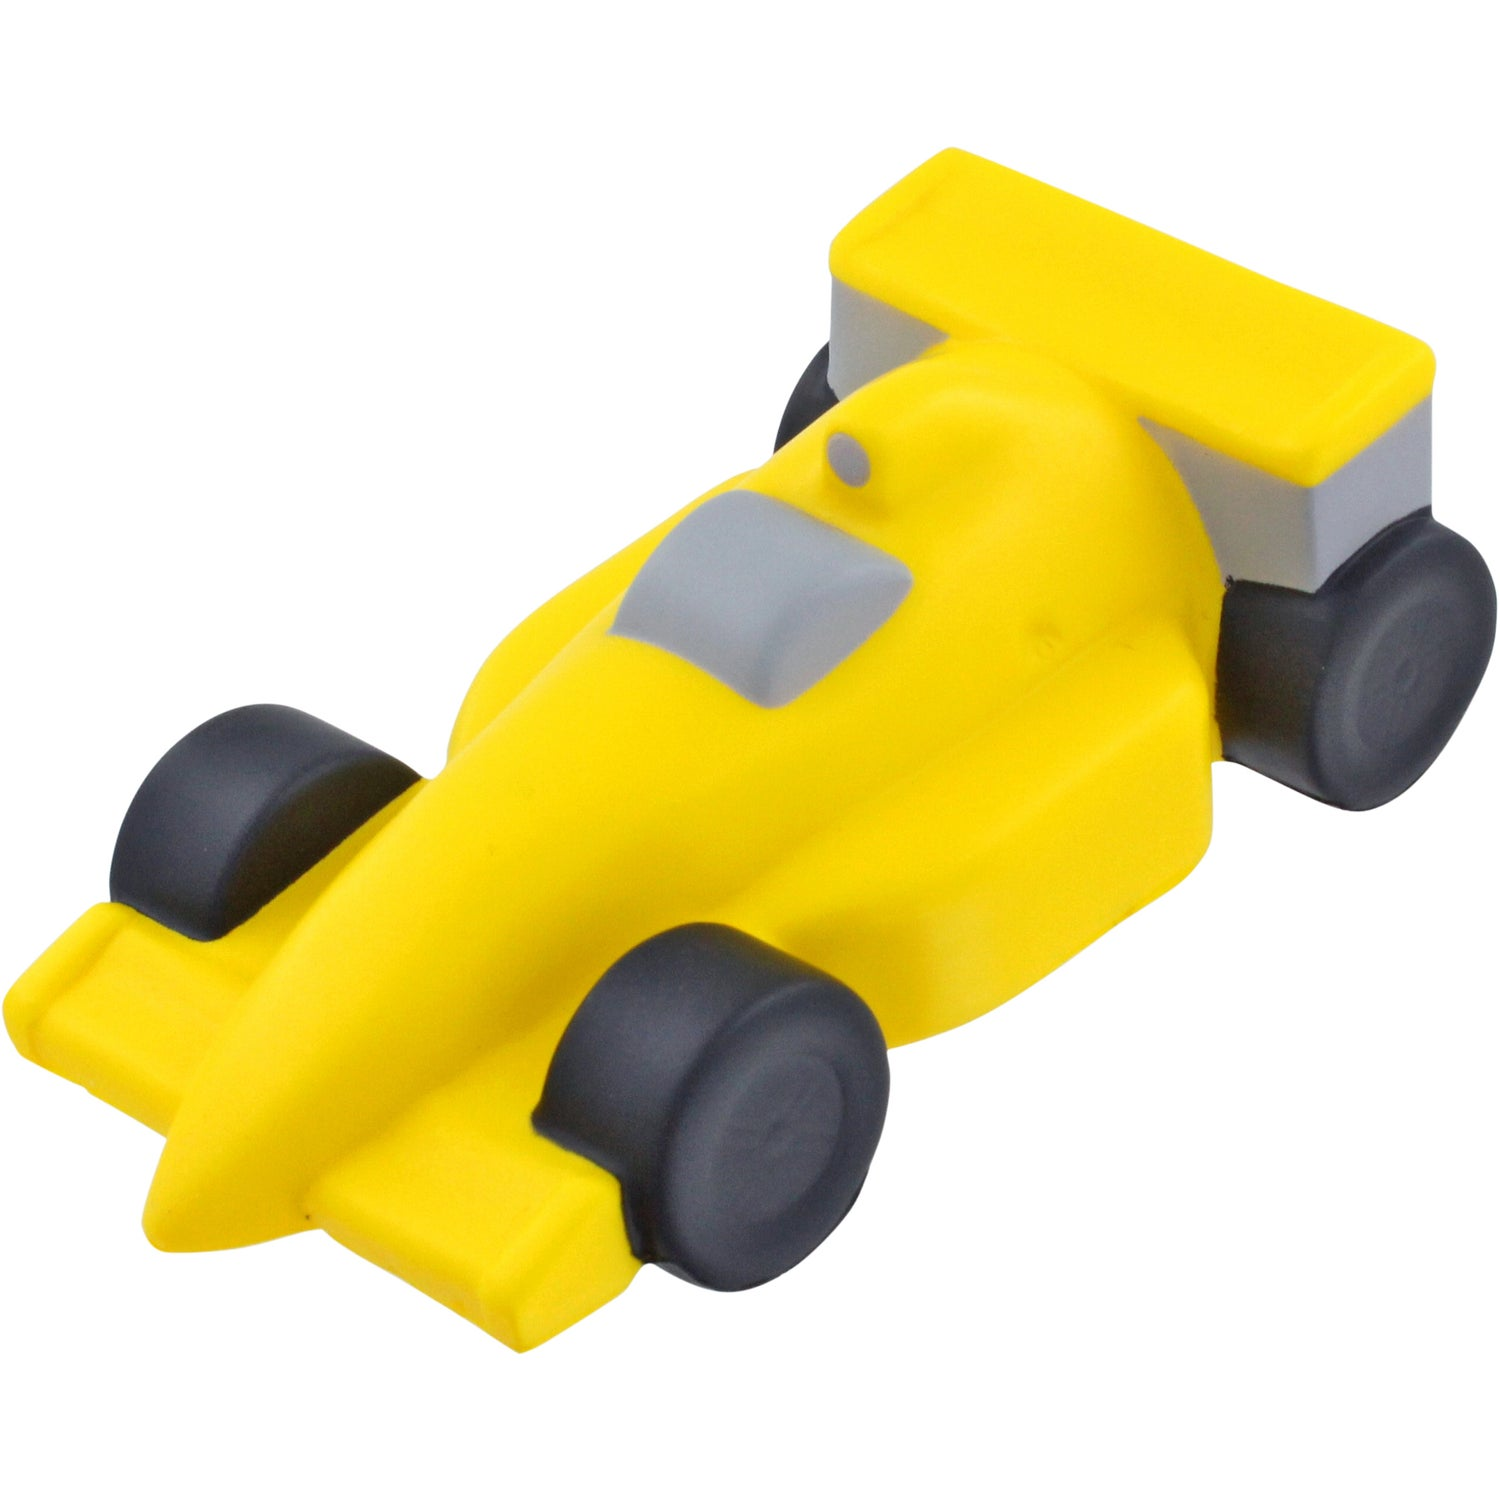 Race Car Stress Ball (Yellow)